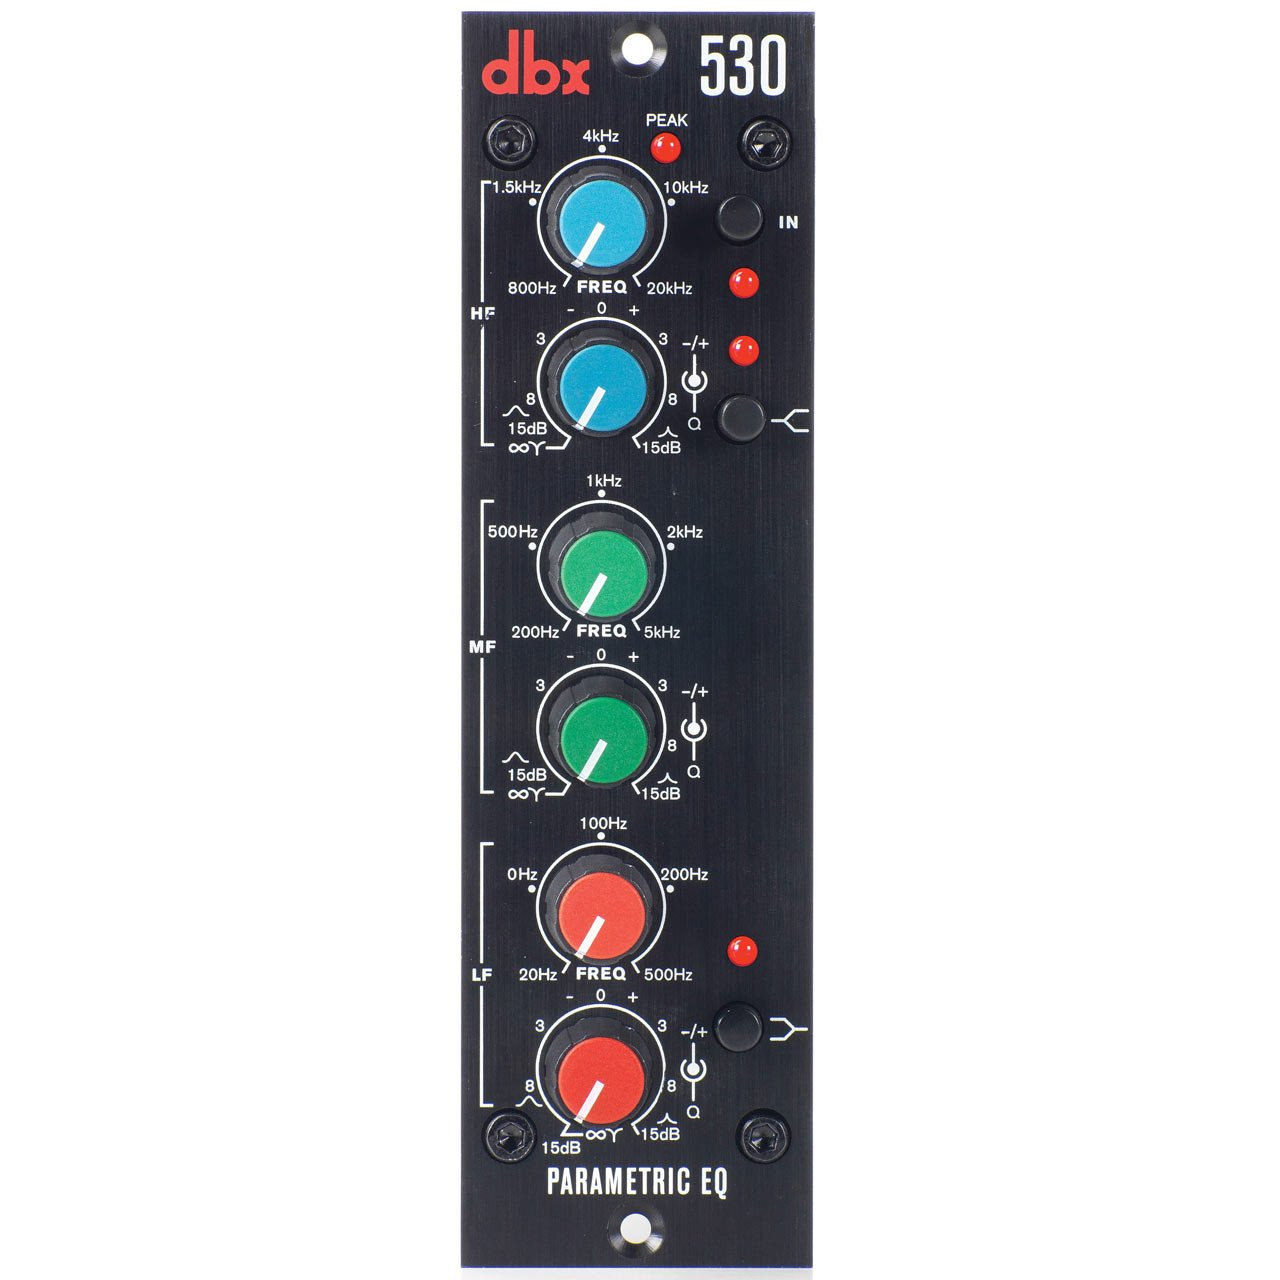 500 Series - DBX 530 Parametric EQ - 500 Series